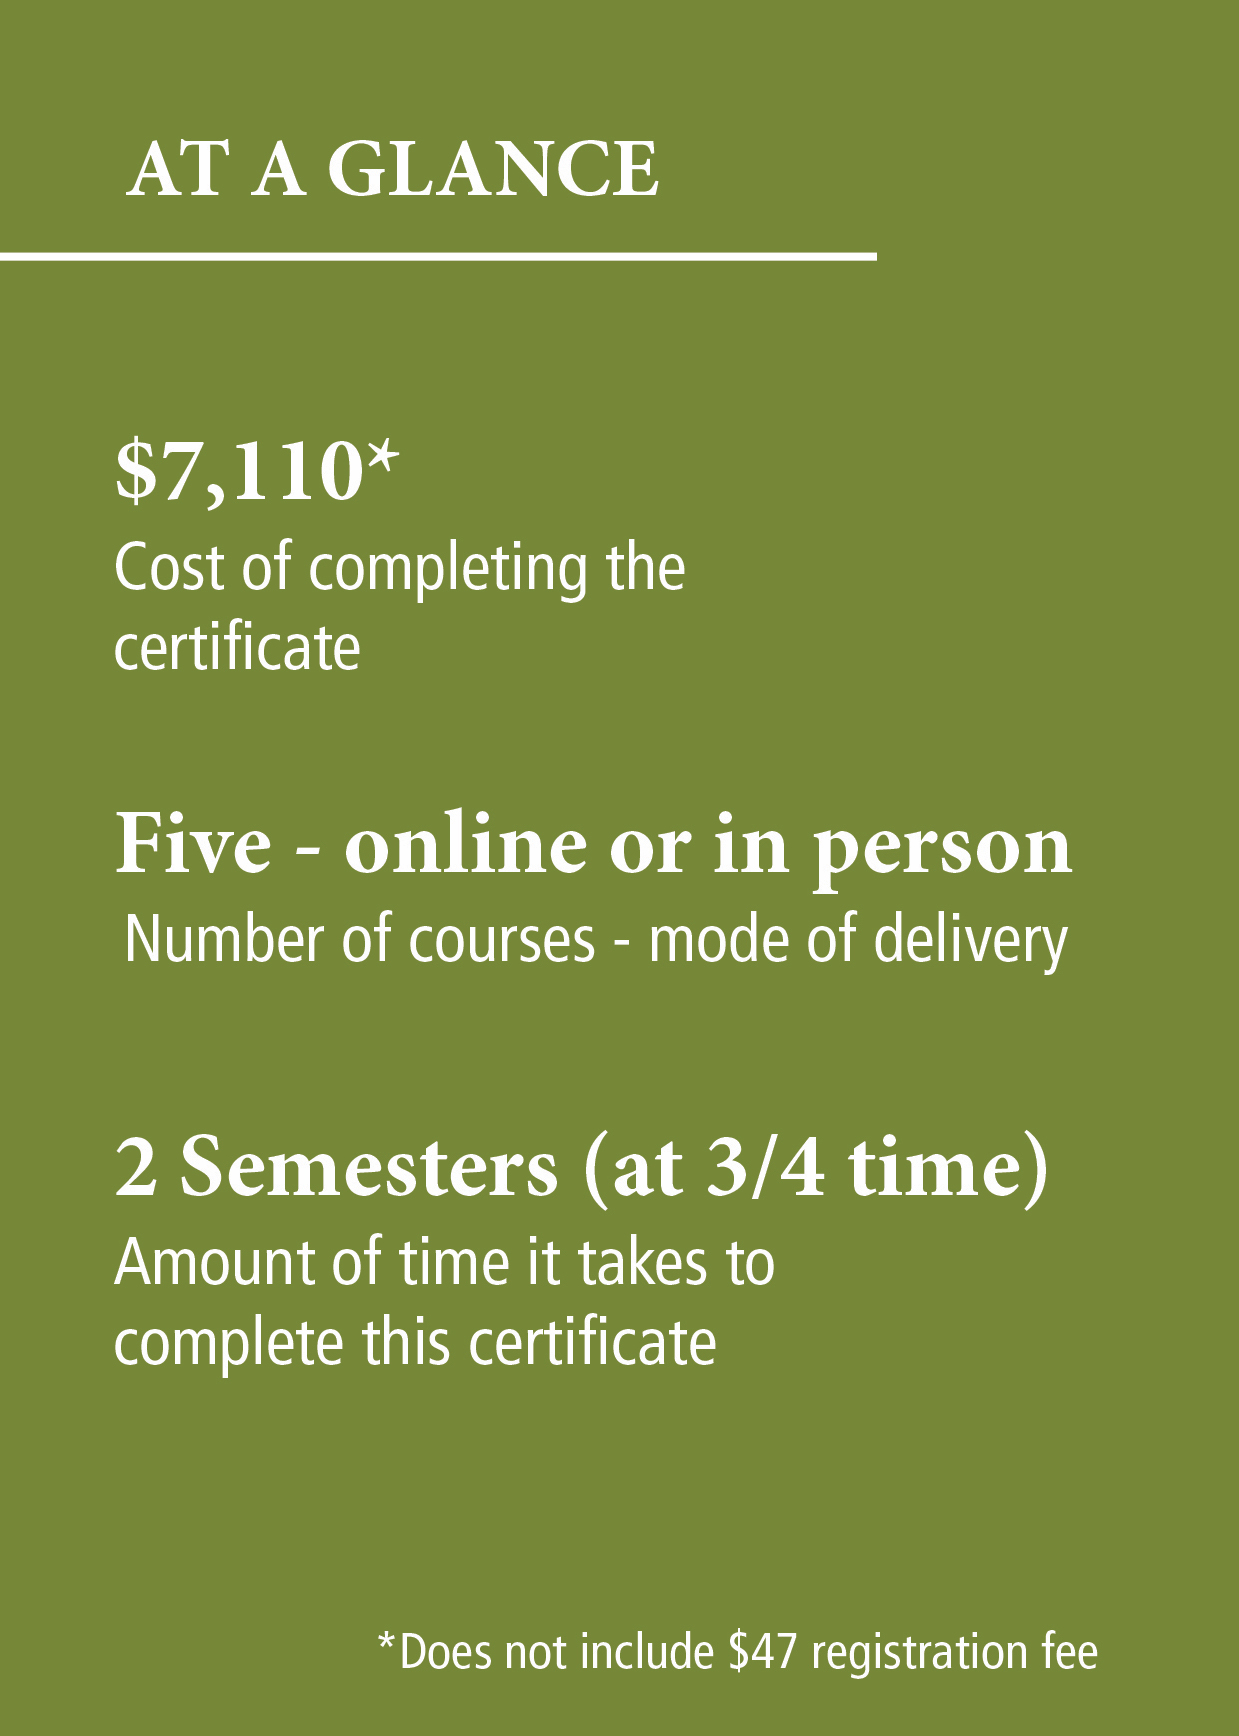 At a glance - Certificates